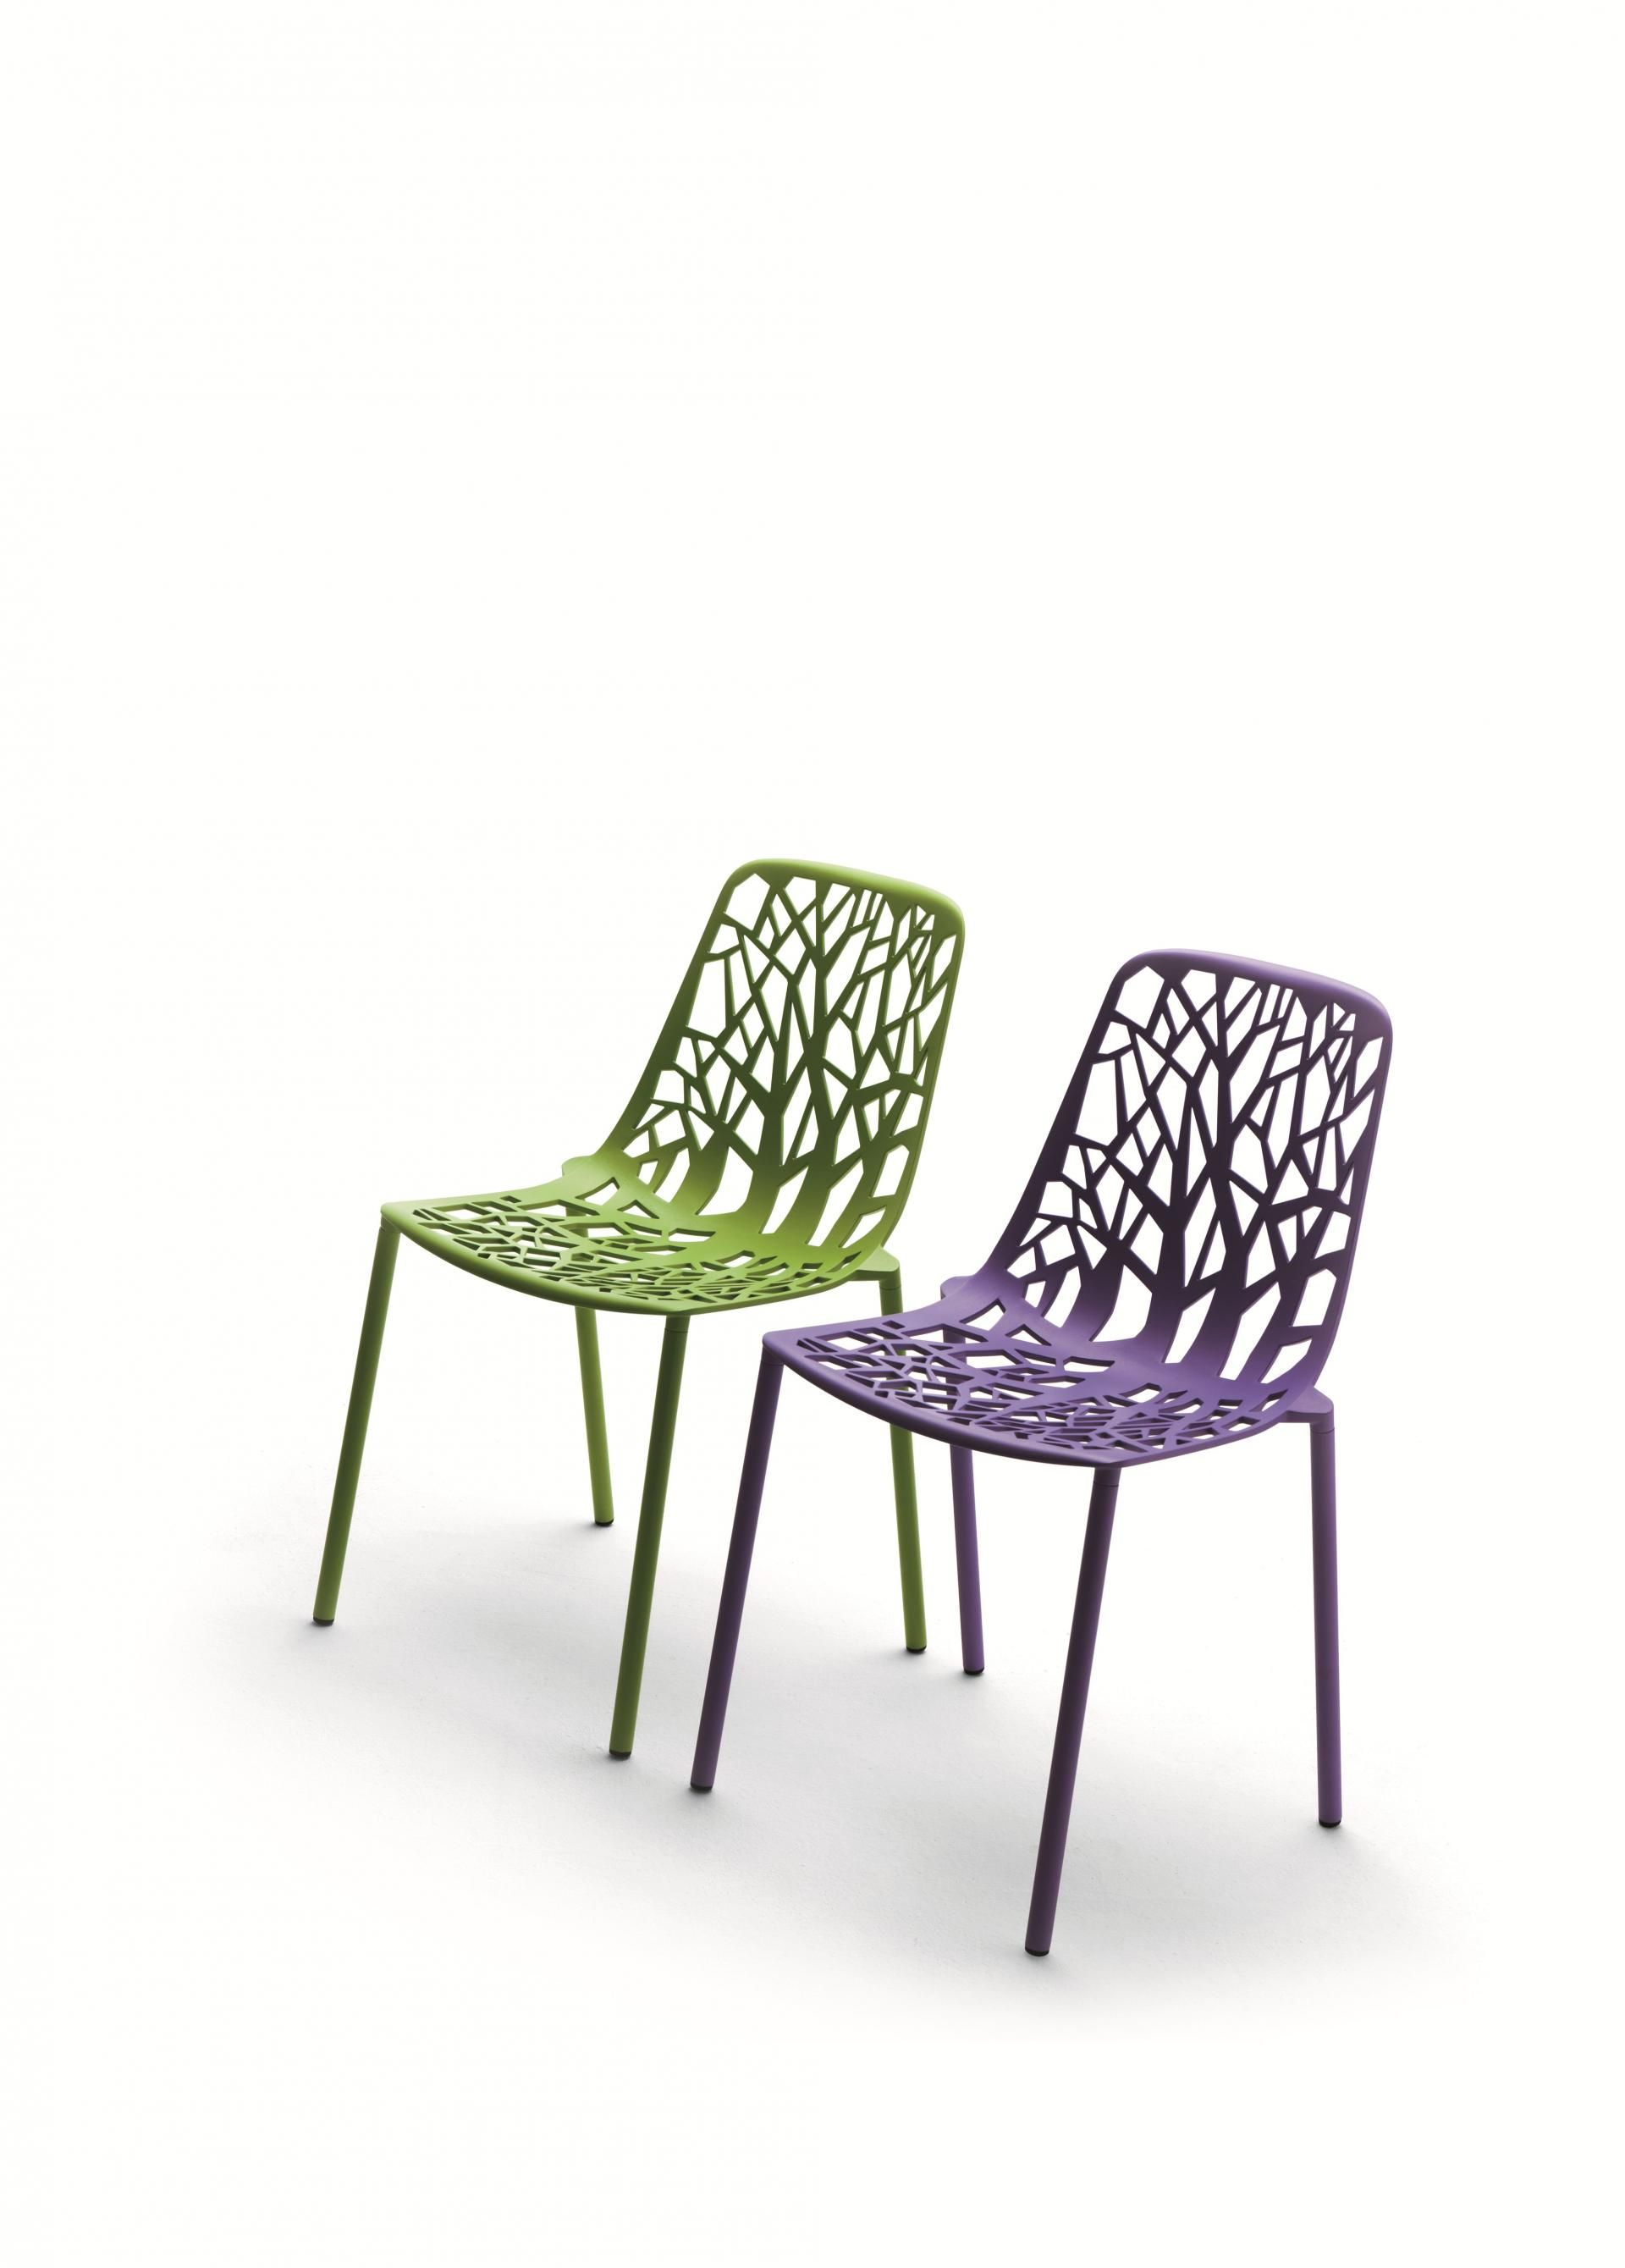 Forest by FAST S.p.A.  Archello  Outdoor chairs, Garden chairs